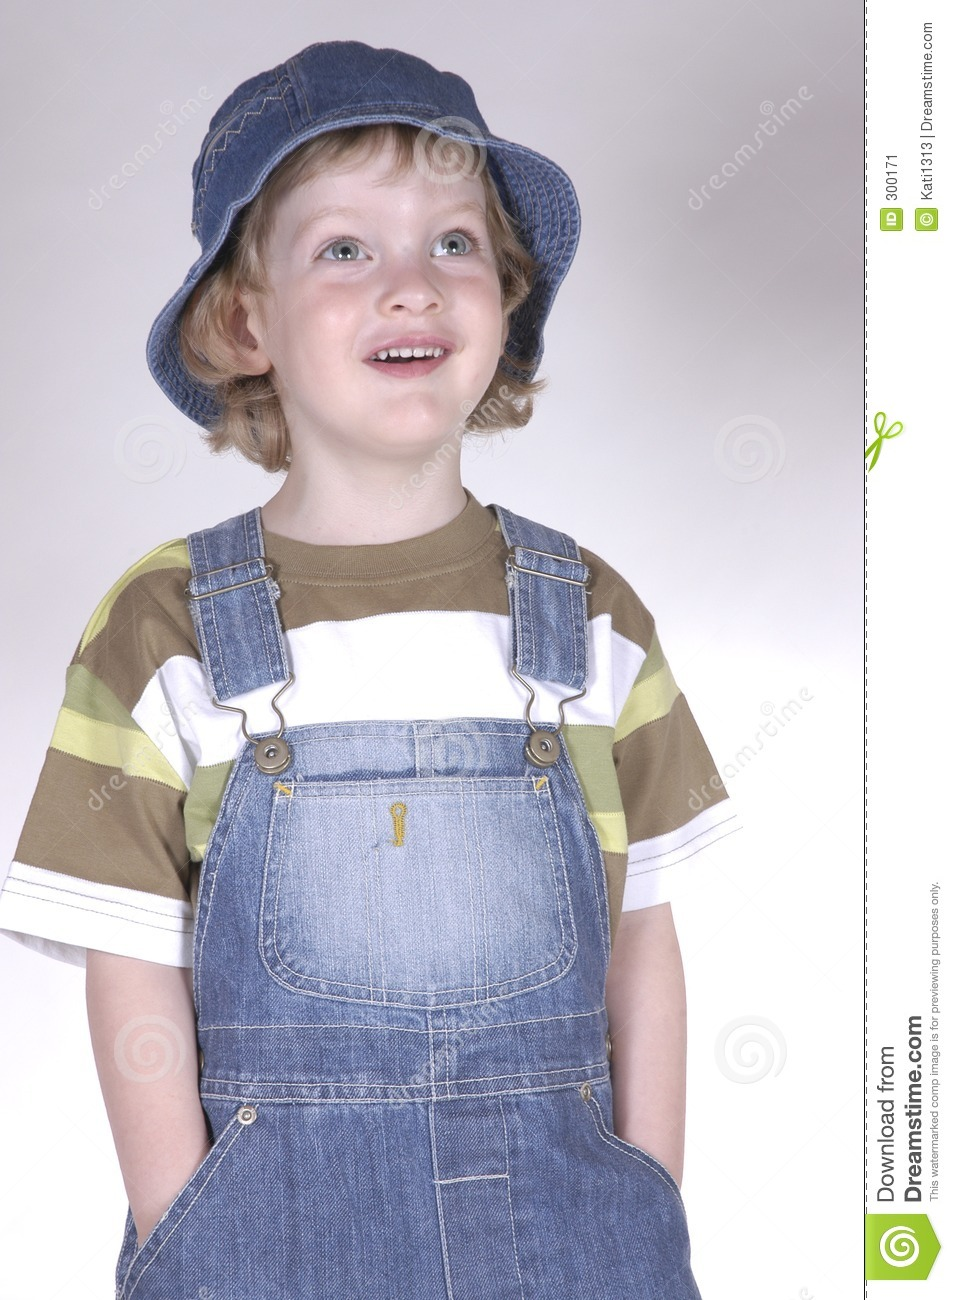 Little boy with hat